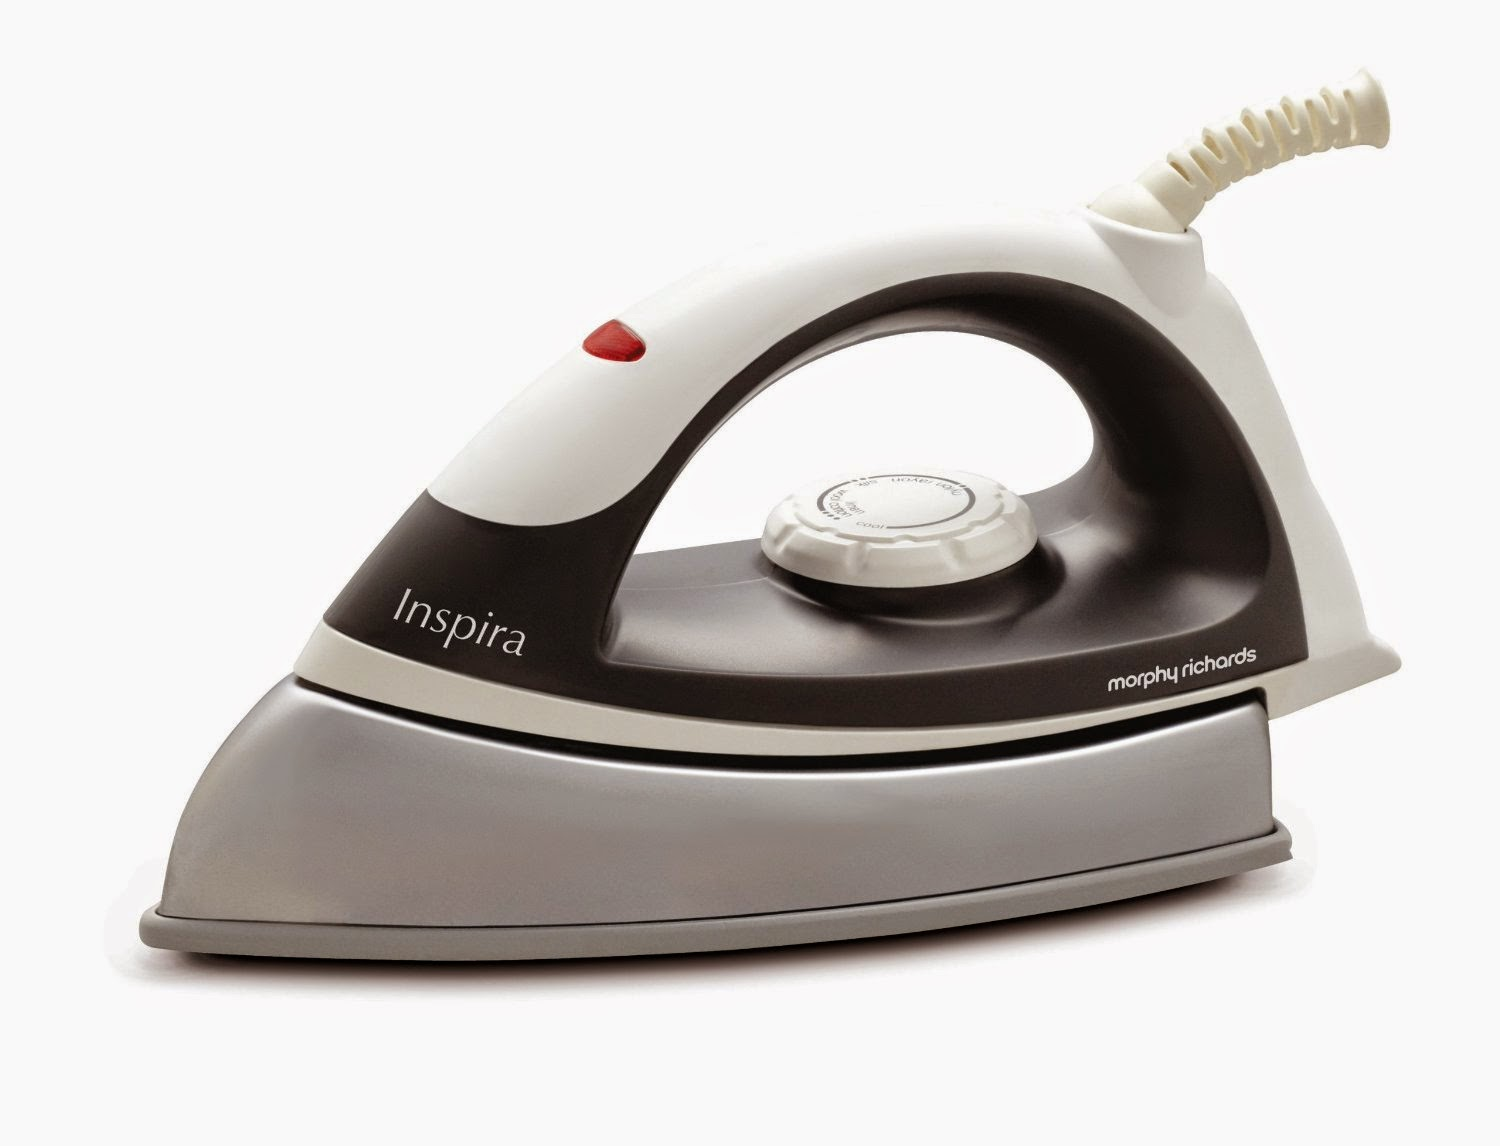 Amazon: Buy Morphy Richards Inspira 1000-Watt Dry Iron (White and Black) at Rs.508